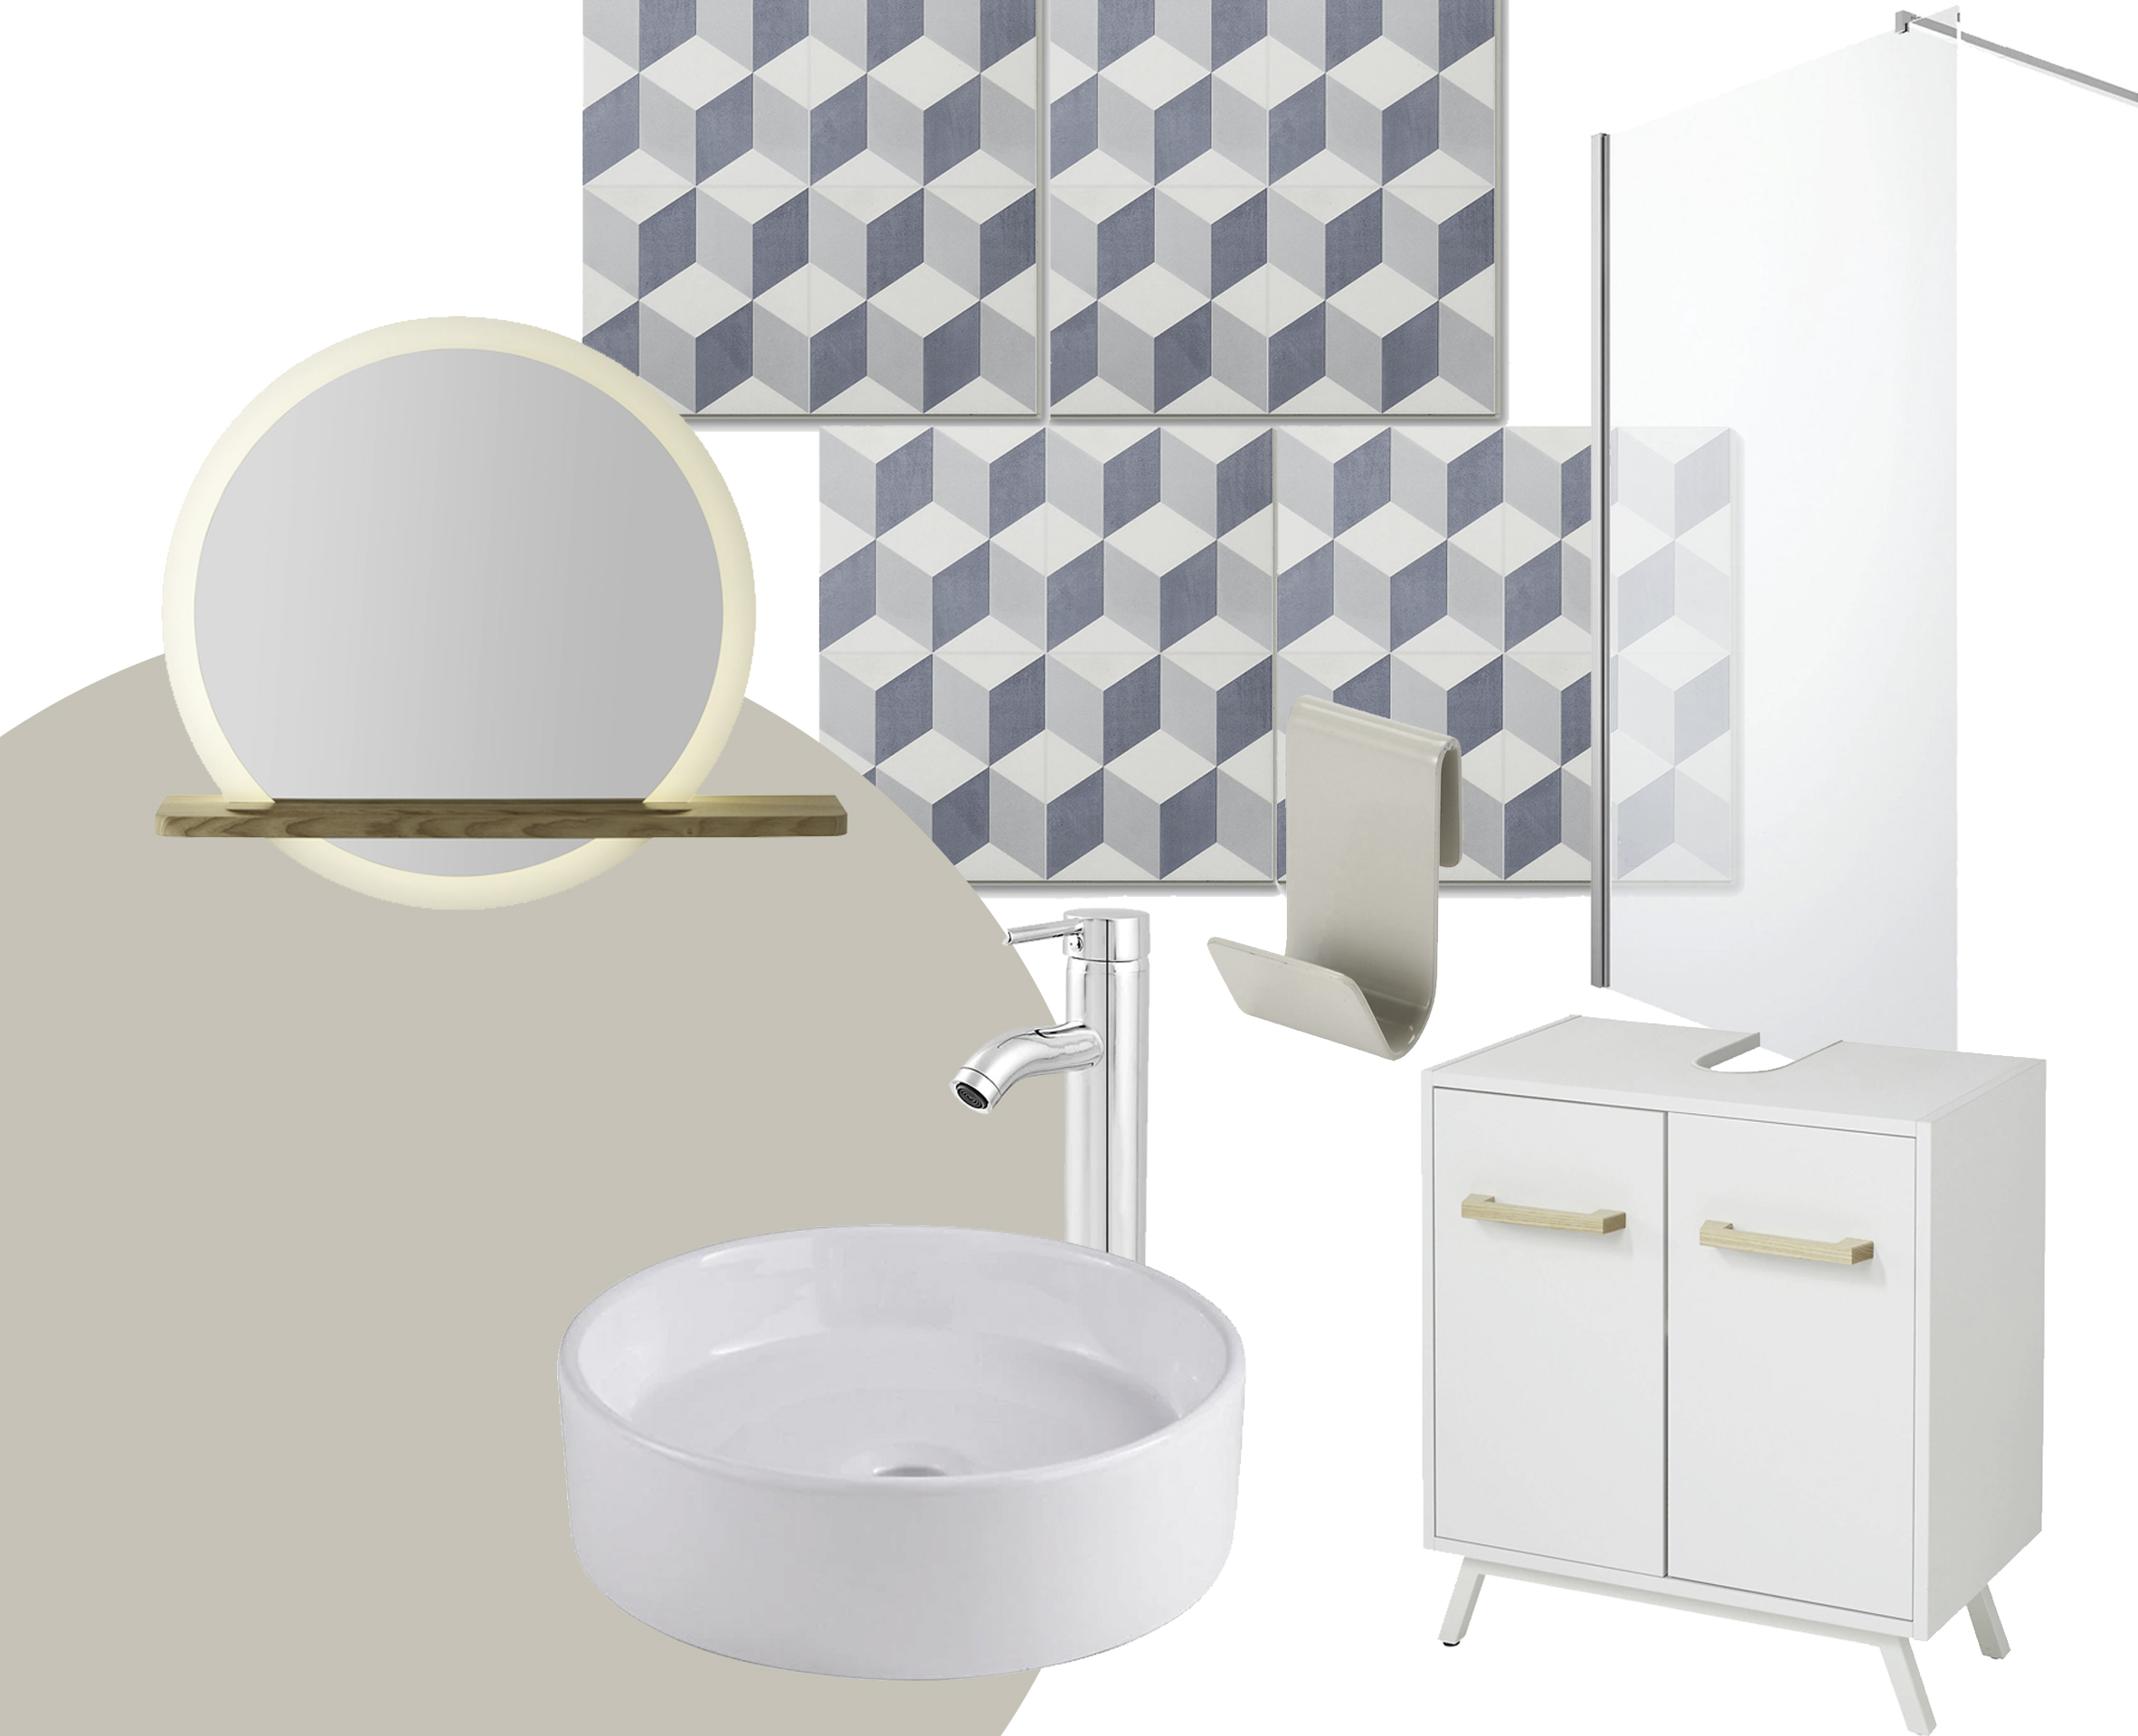 From left to right: GoodHome bathroom paint in Cancun; GoodHome Adriska mirror; GoodHome Scalea basin; GoodHome Poprock vinyl tiles; GoodHome Hoffell tall basin mixer; GoodHome Amantea storage hook; GoodHome Ladoga basin unit; GoodHome Beloya shower screen